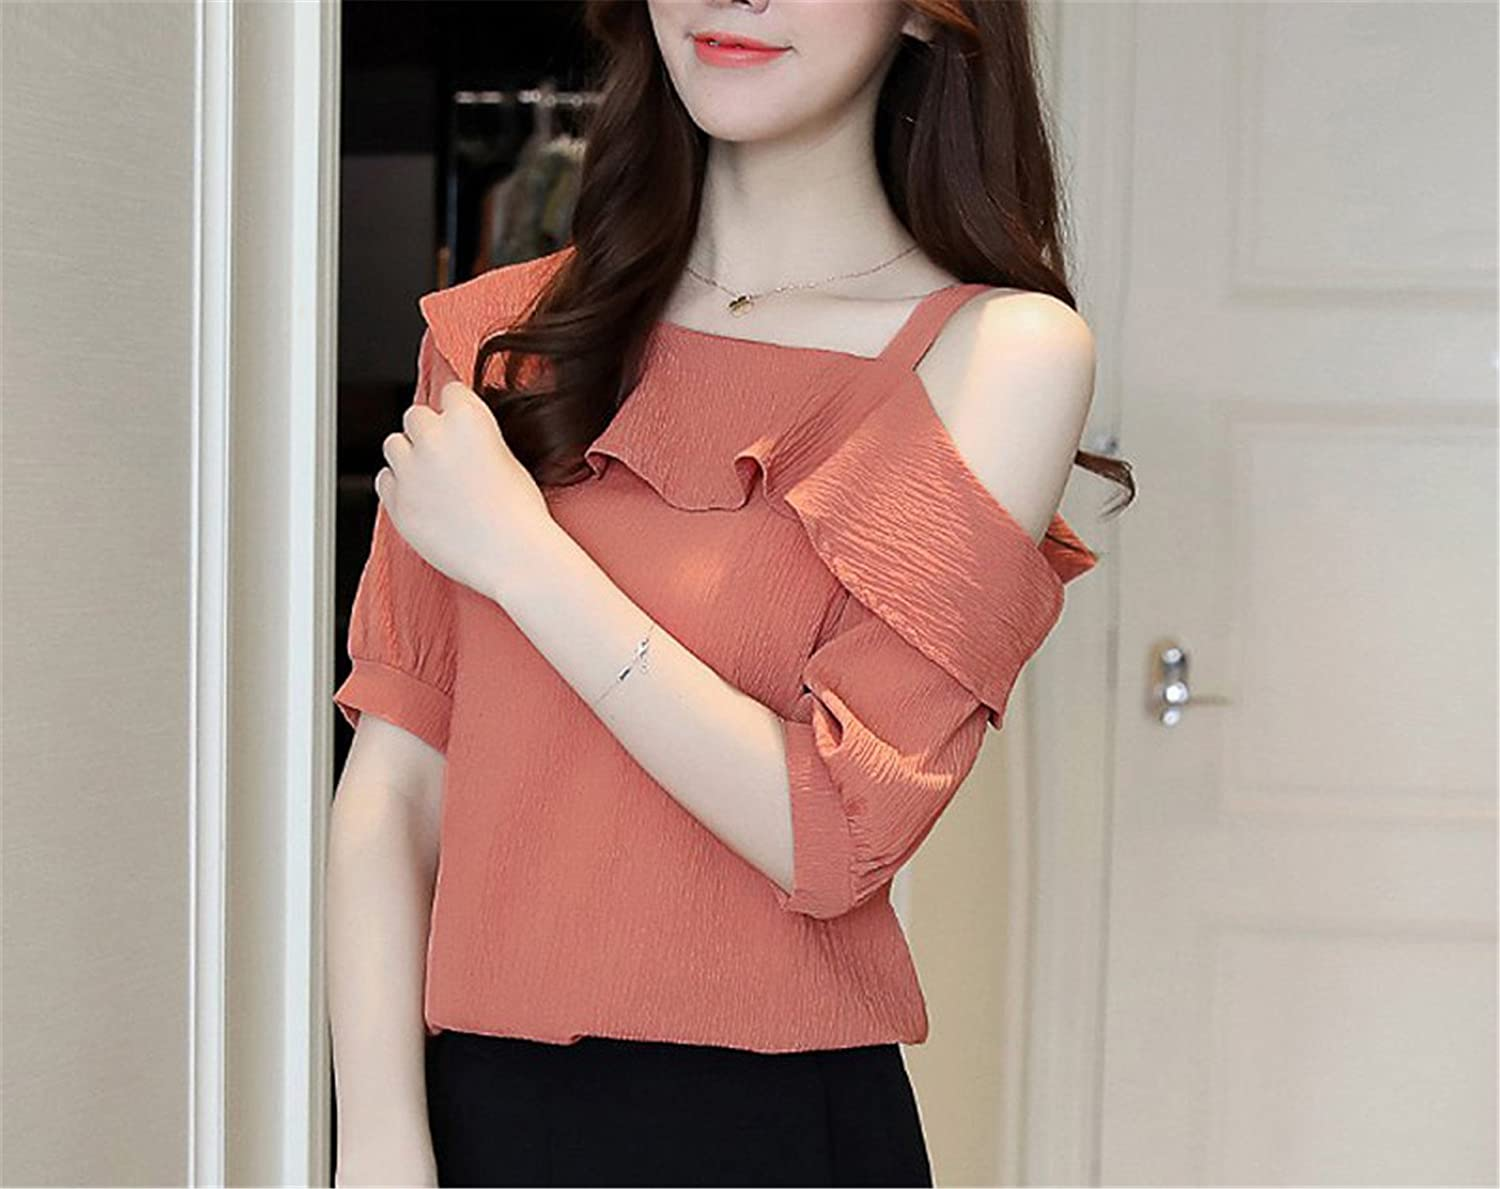 OUXIANGJU Summer Women Fashion Tops Elegant Chiffon One Shoulder Shirts Ruffles Skew Collar Blouses at Amazon Womens Clothing store: